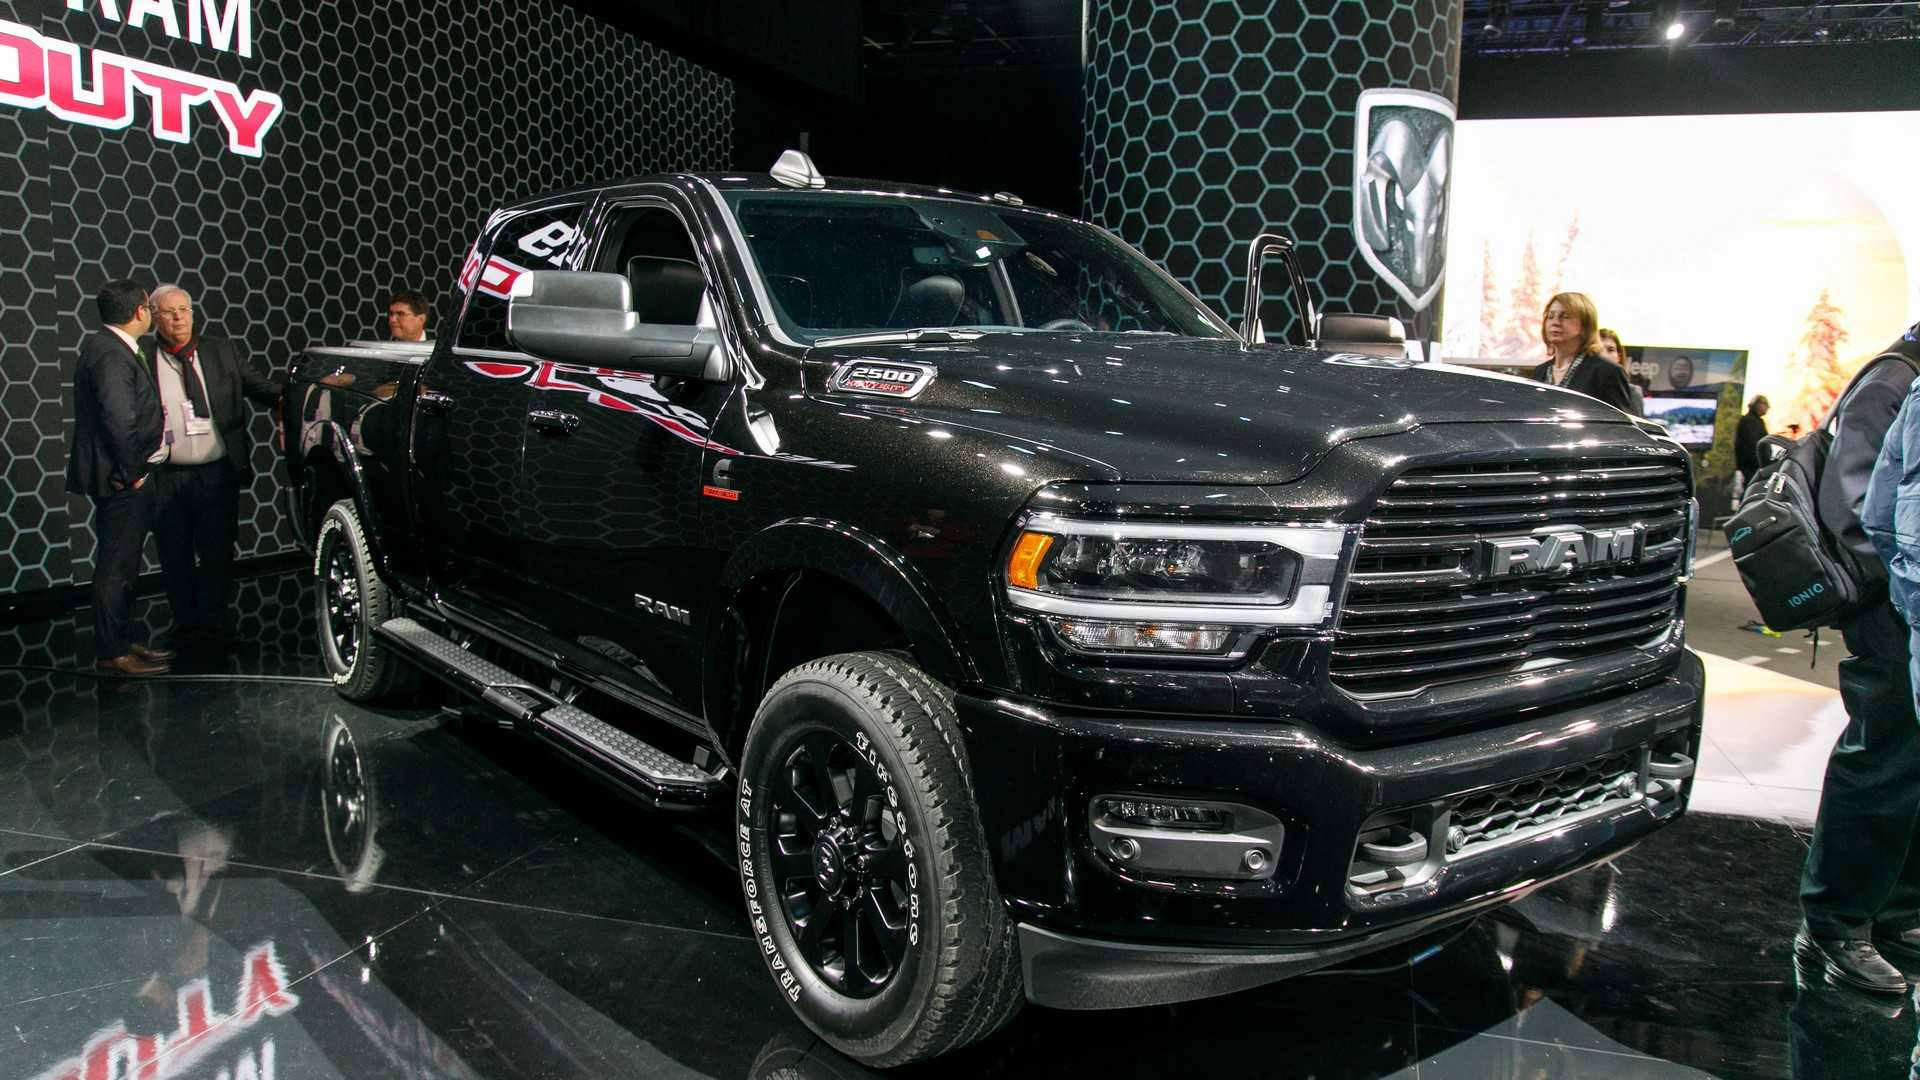 74 All New New Dodge V8 2019 Release Date Release by New Dodge V8 2019 Release Date